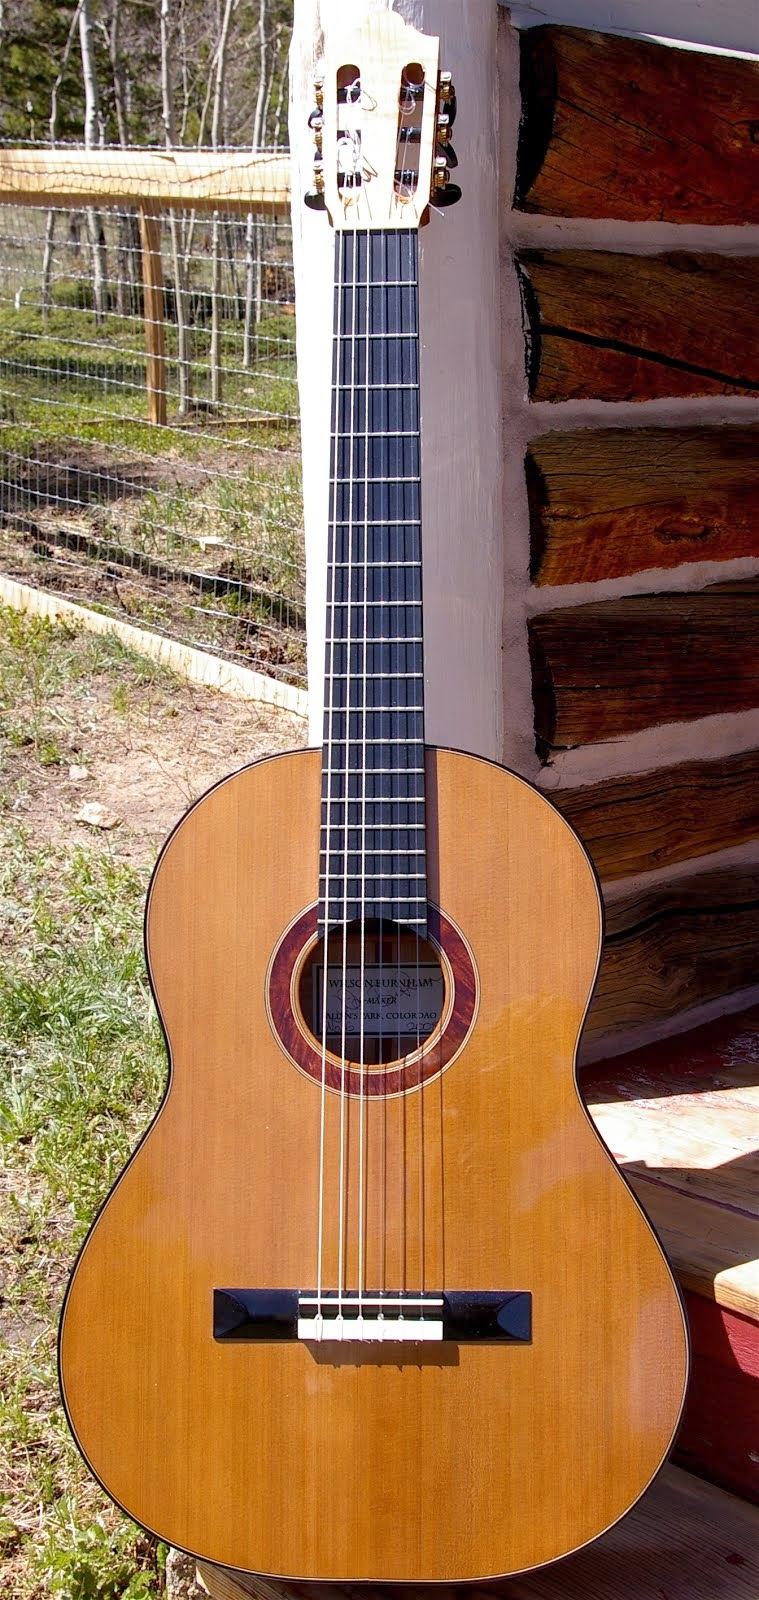 SOLD! 1968 Hernandez y Aguado Model Guitar